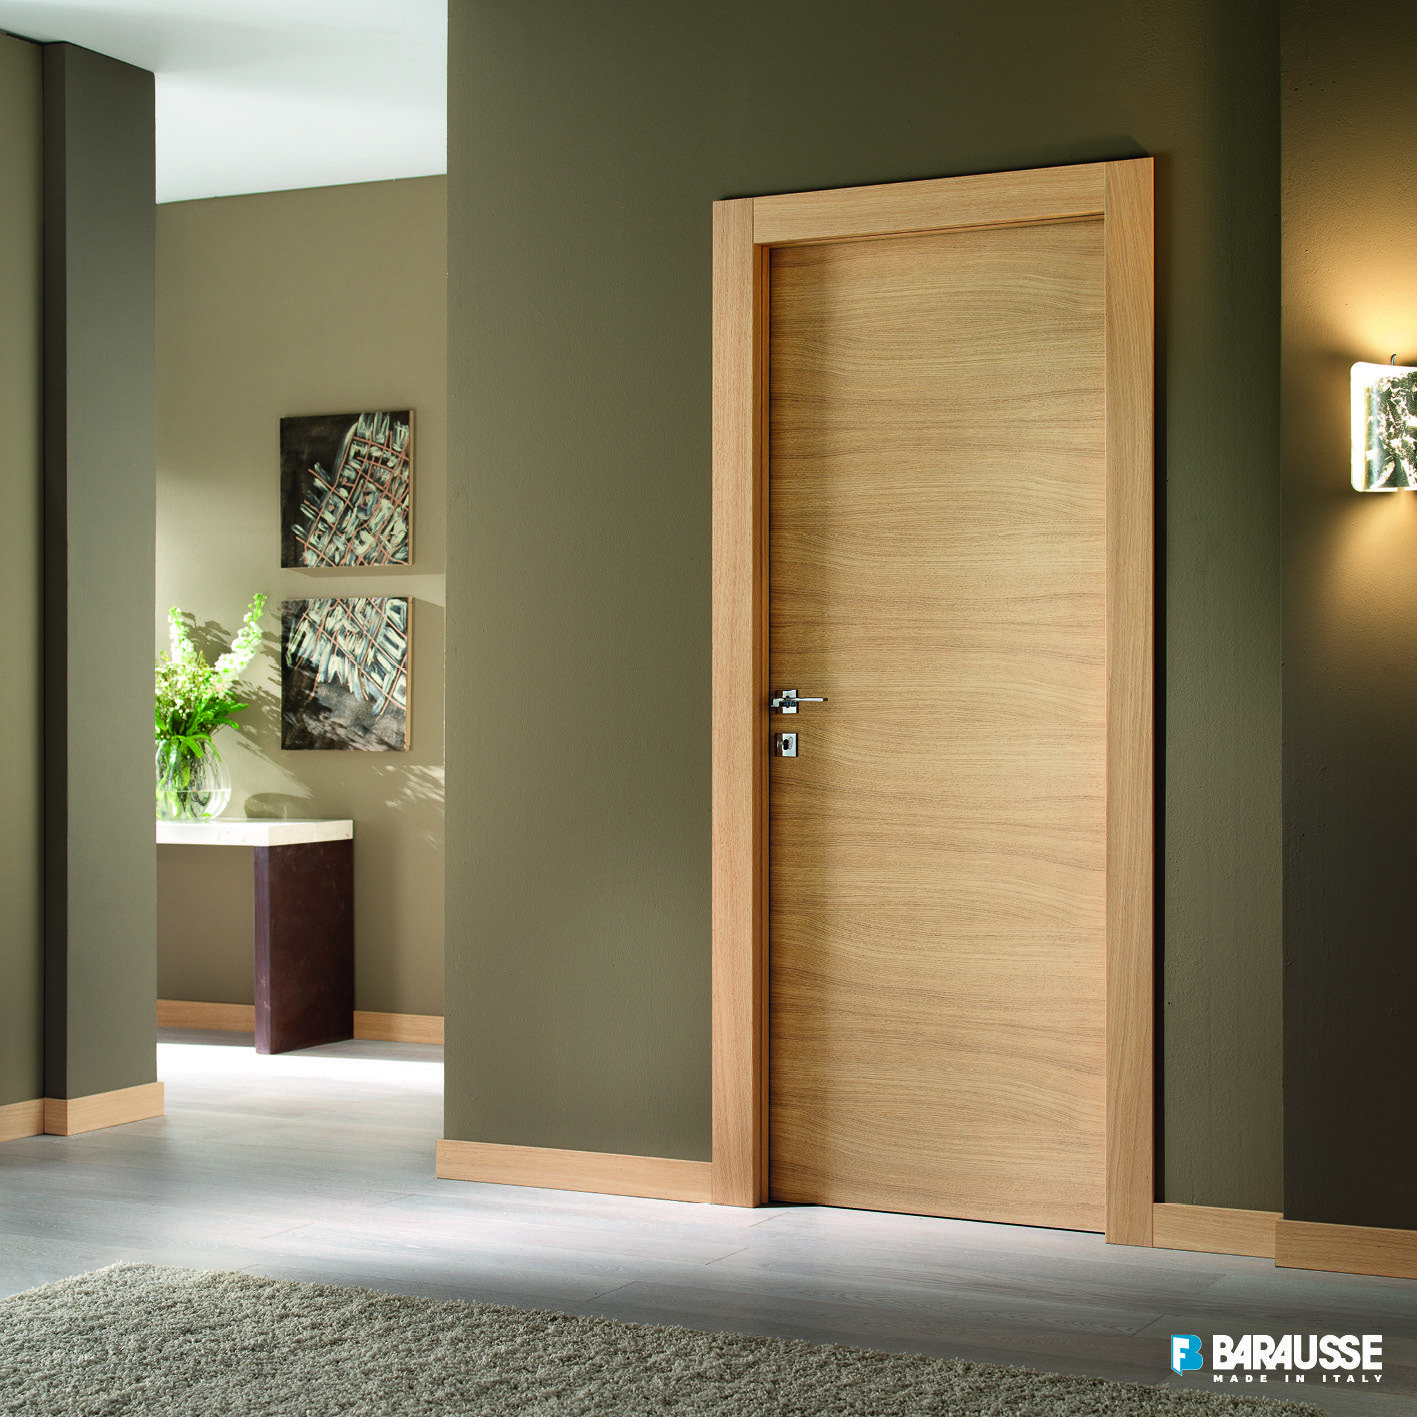 Italian interior doors by Barausse Visit our